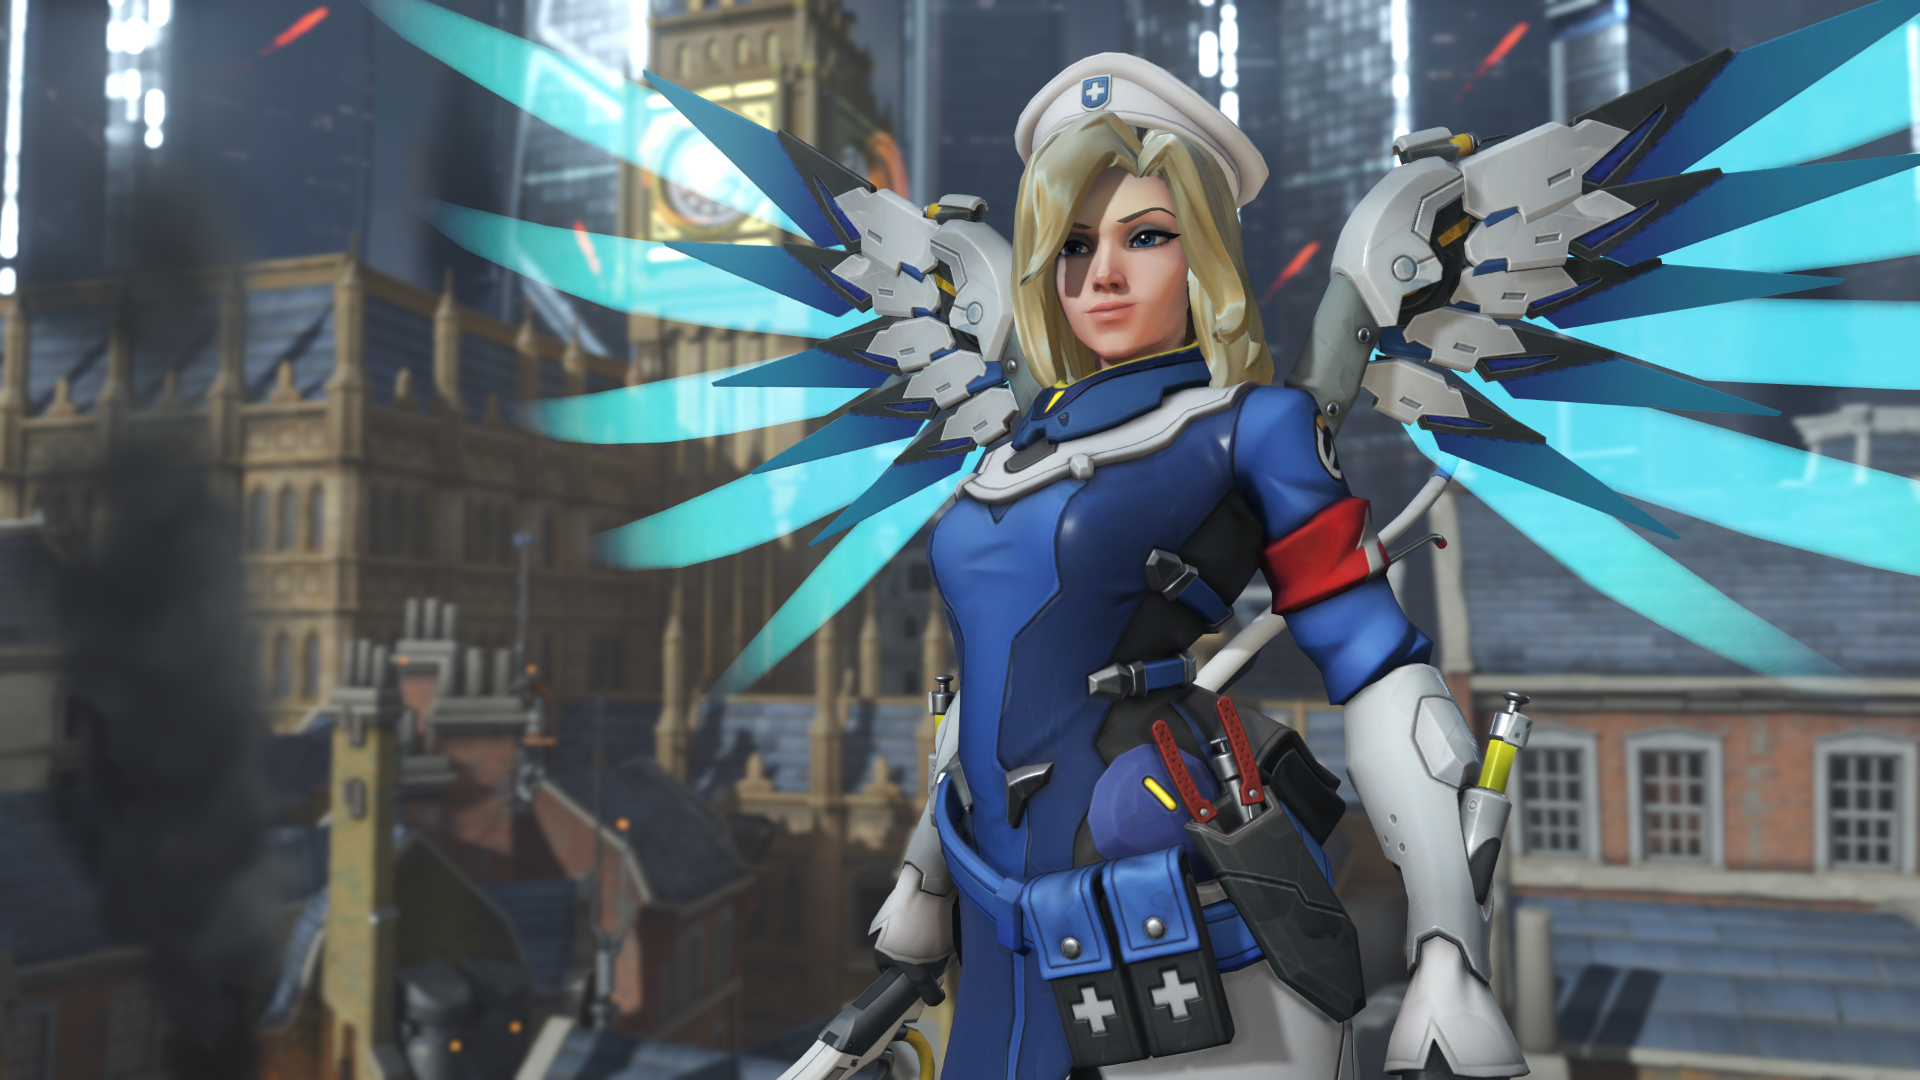 Combat Medic Ziegler is the hard-to-beat choice for healer in Uprising.